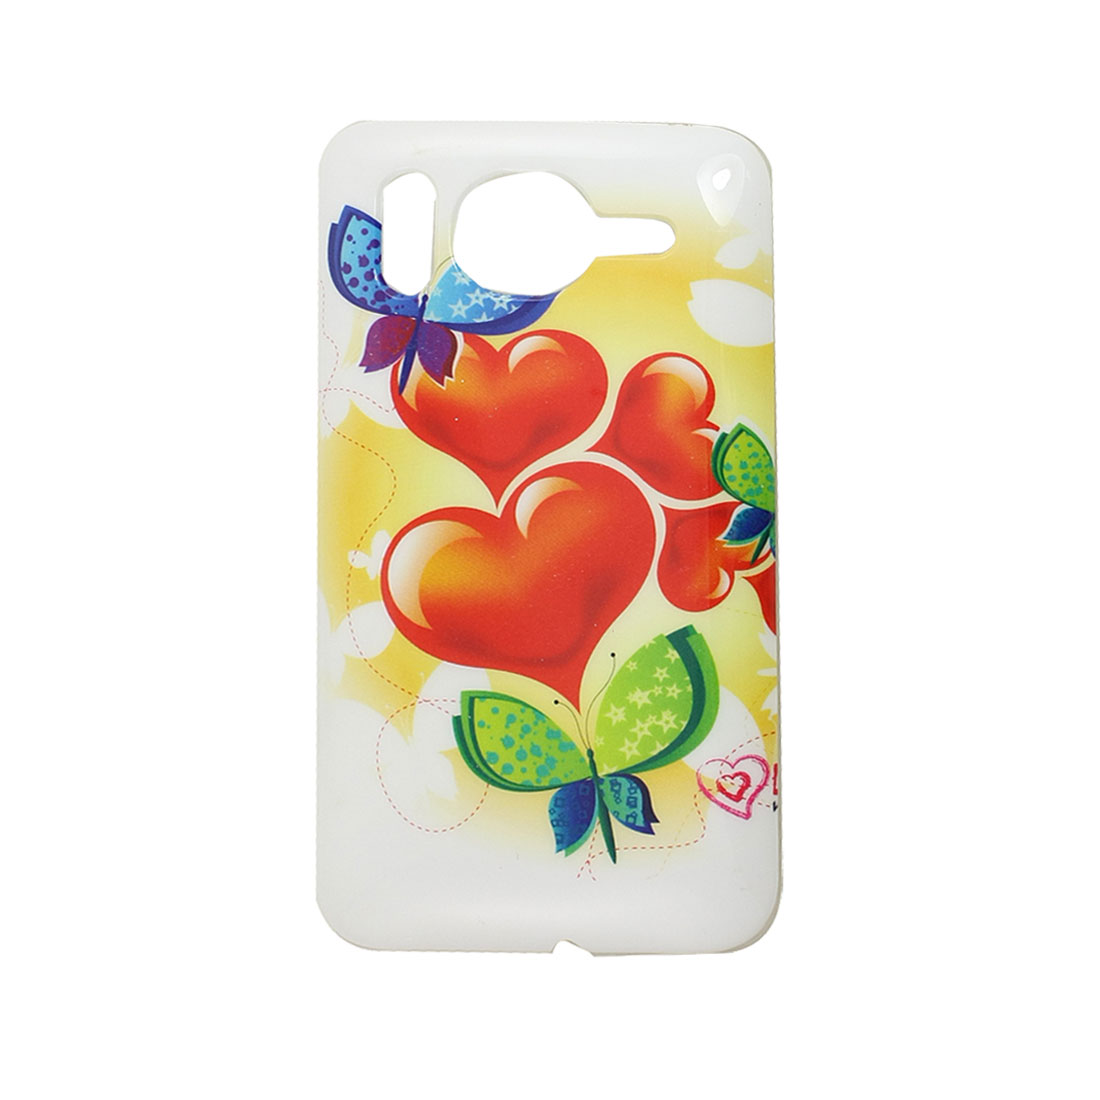 Red Heart Print White Hard Plastic Back Case Shell for HTC G10 Desire HD